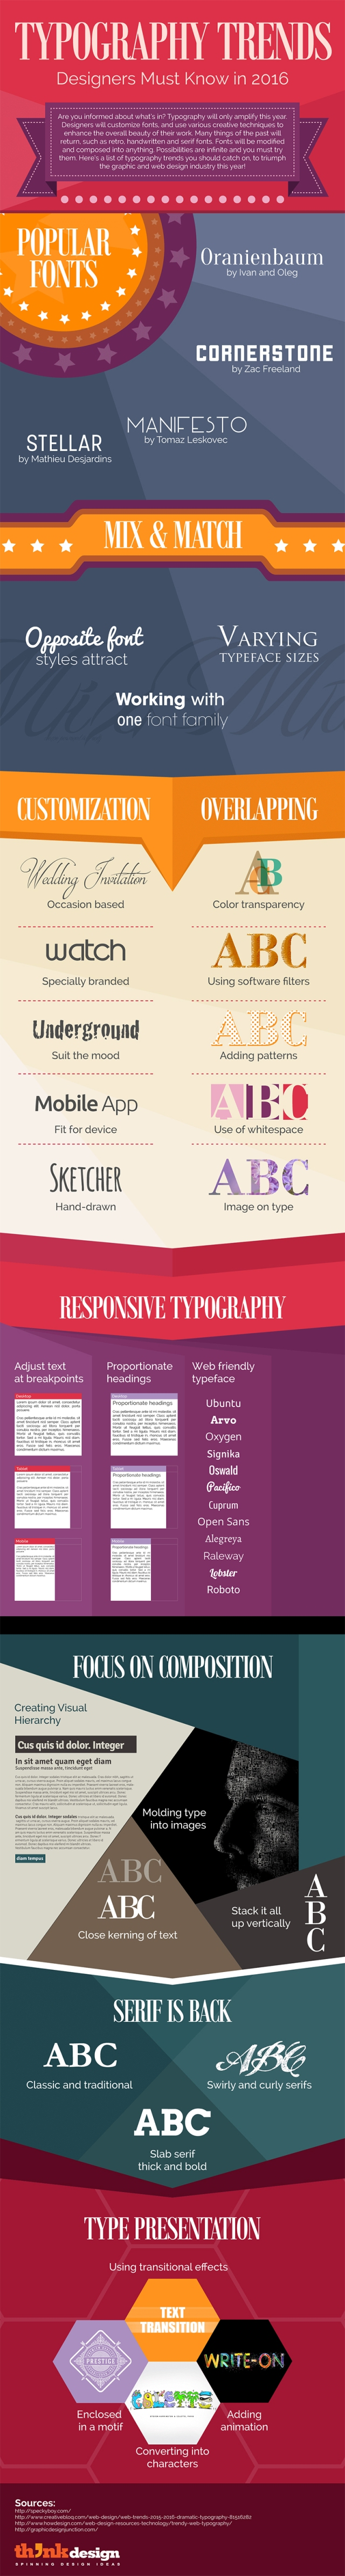 Typography Trends 2016 How to Make Your Website Wording Stand Out